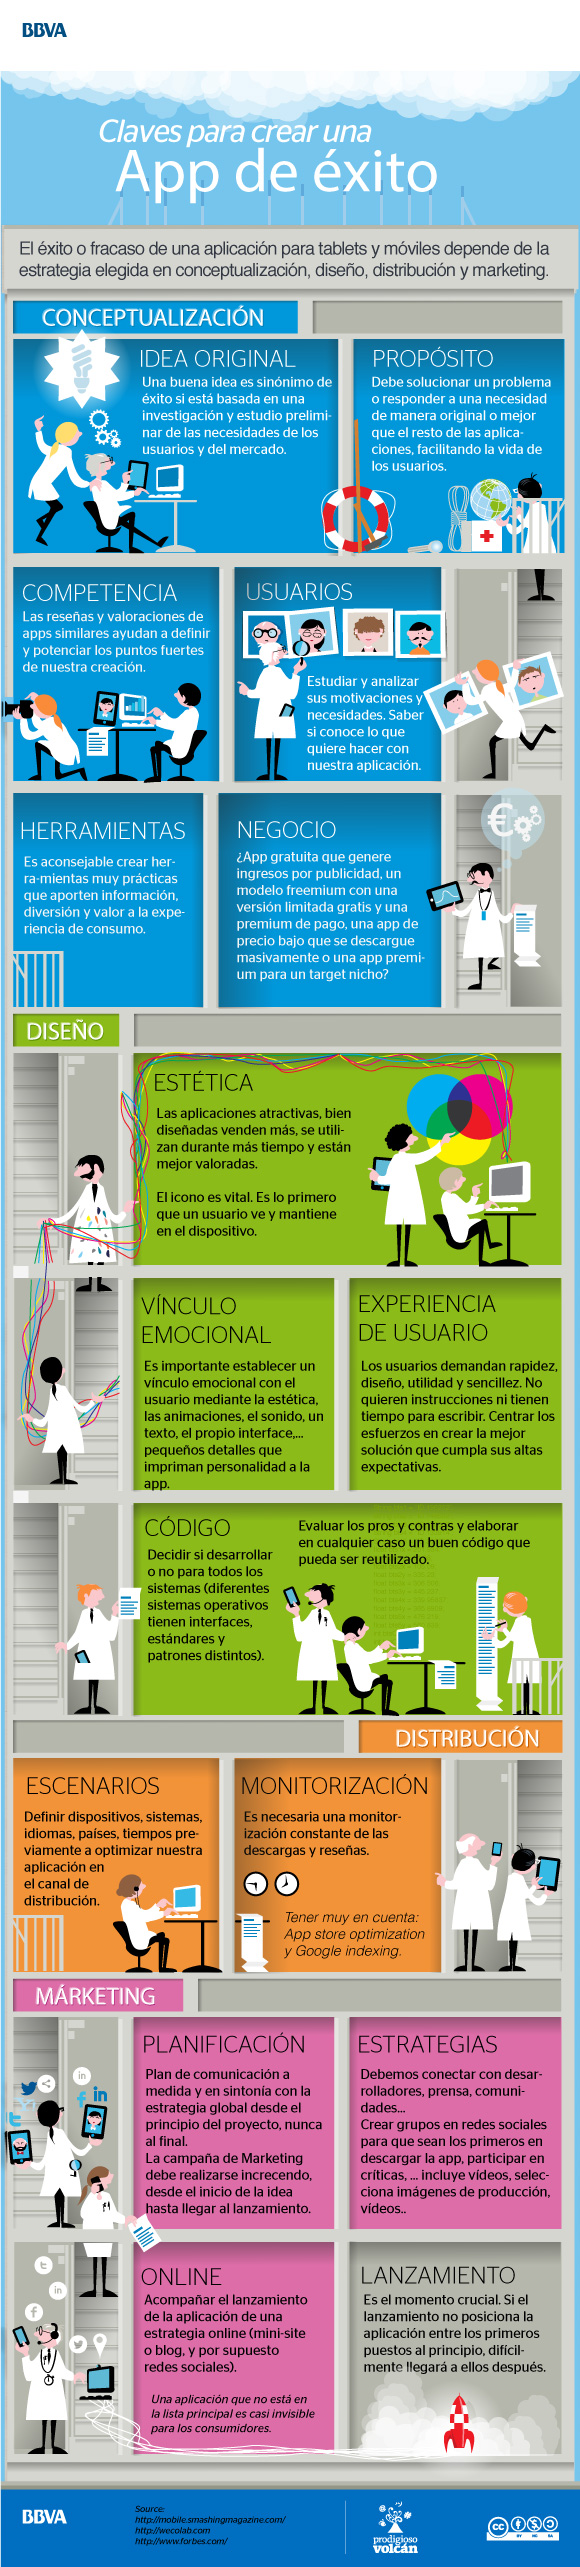 open_innovation_crear-app